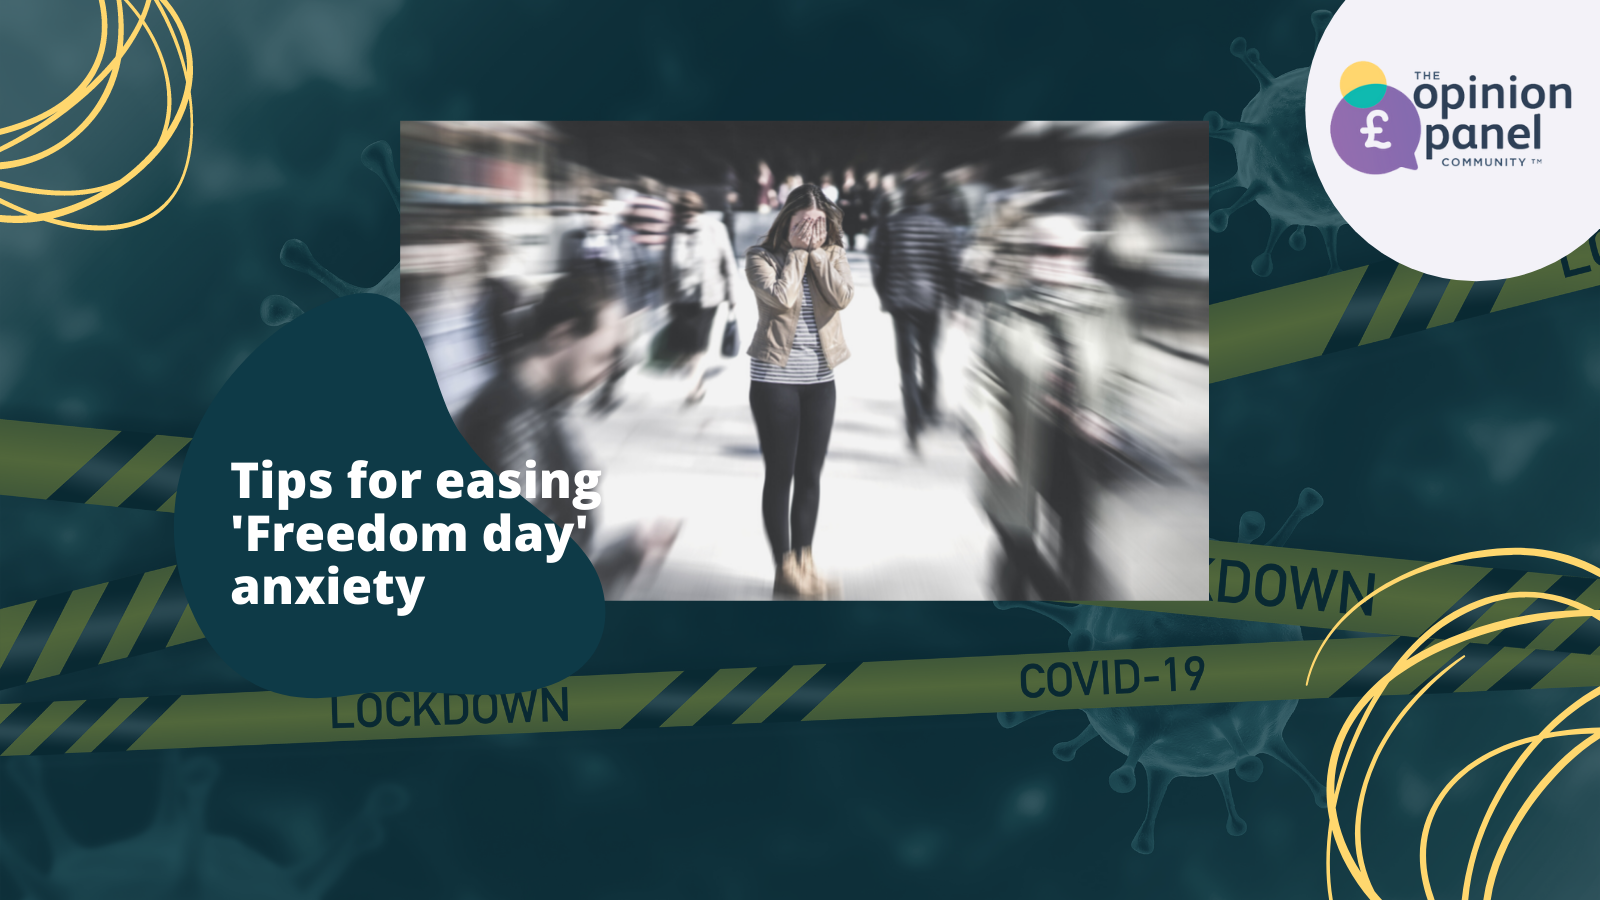 freedom day anxiety title image